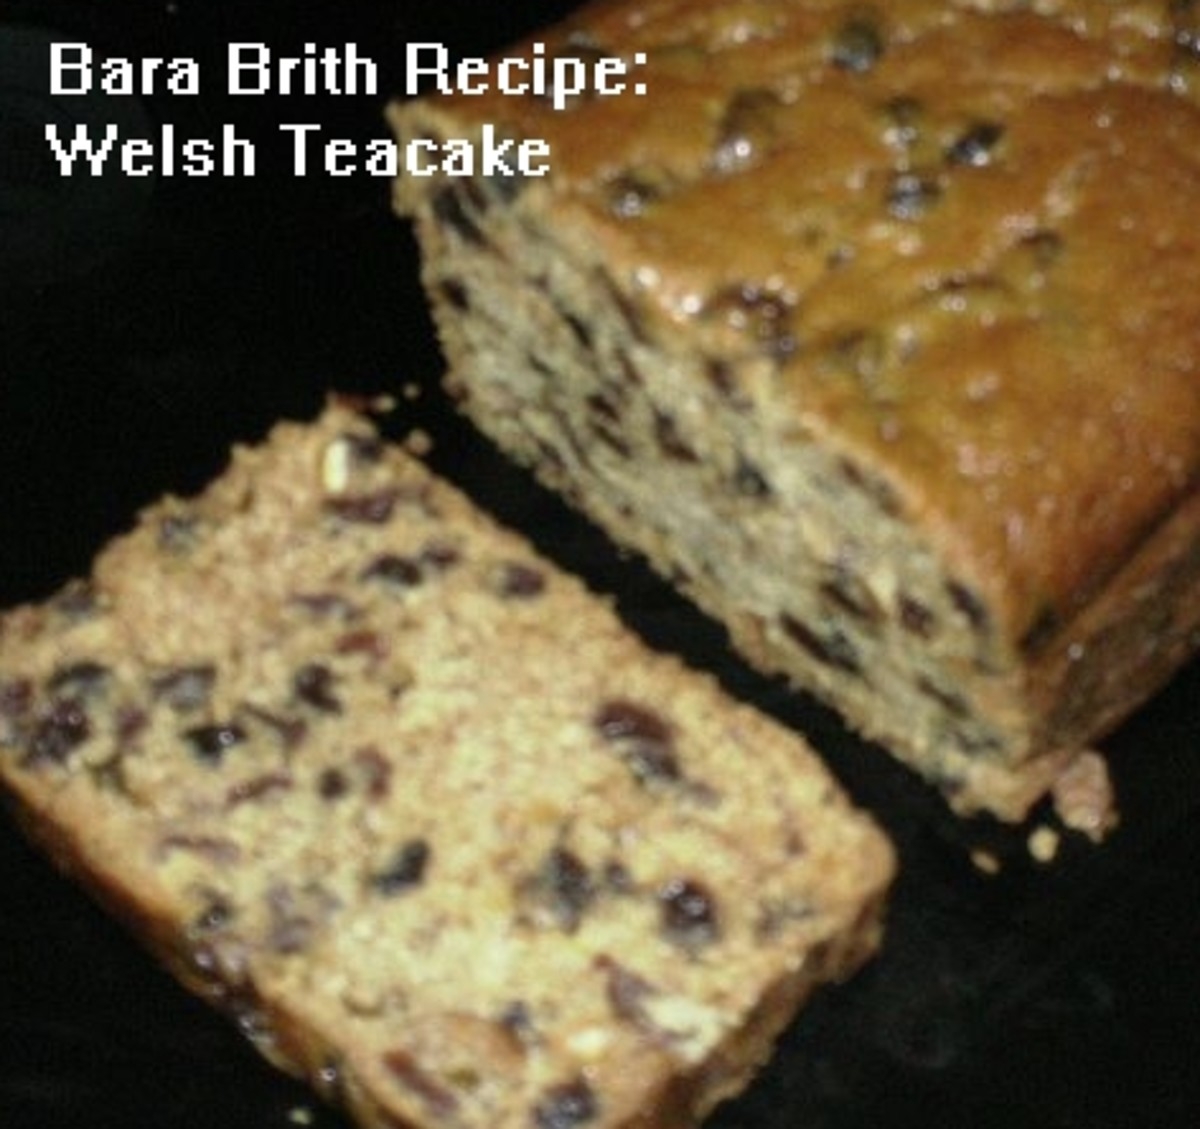 Bara Brith Welsh Recipe for a Teacake.